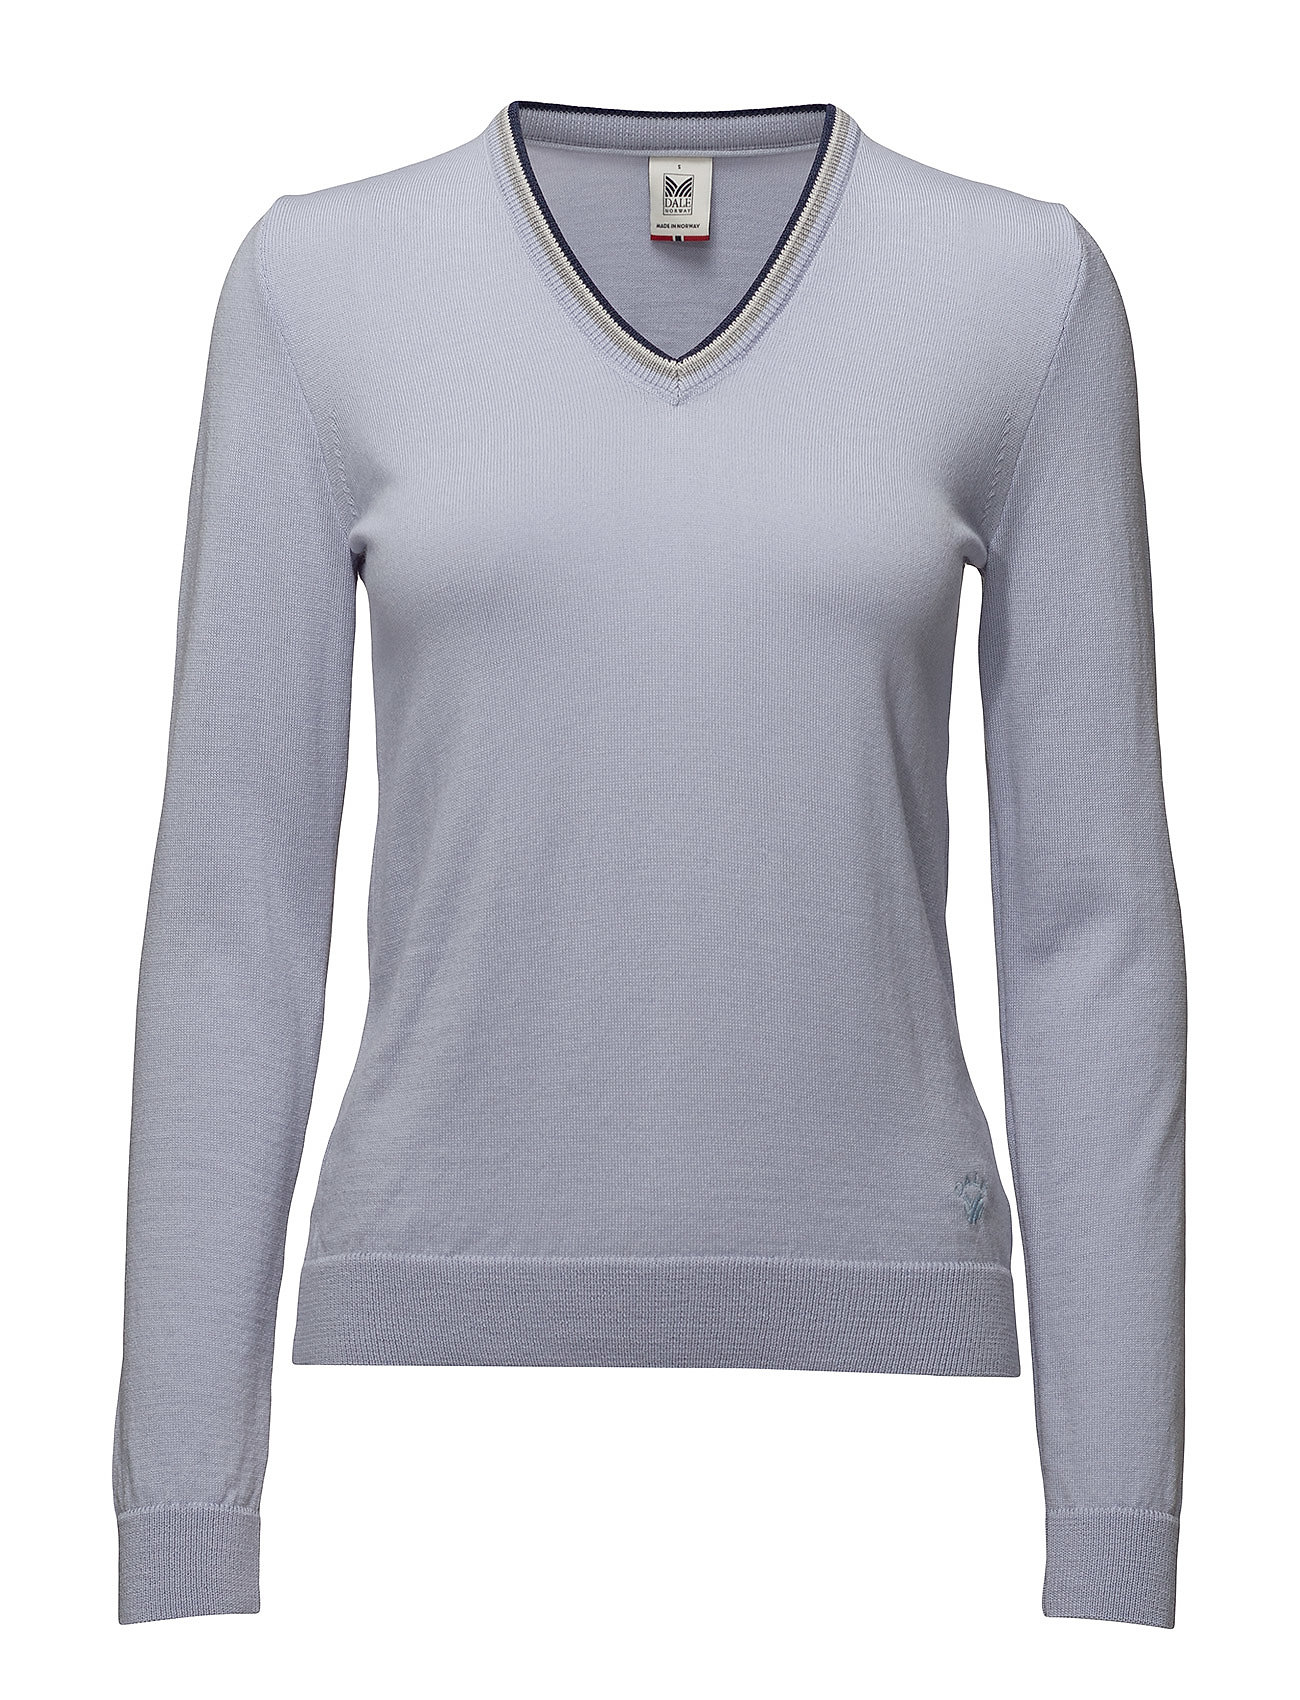 dale of norway Kristin feminine sweater på boozt.com dk